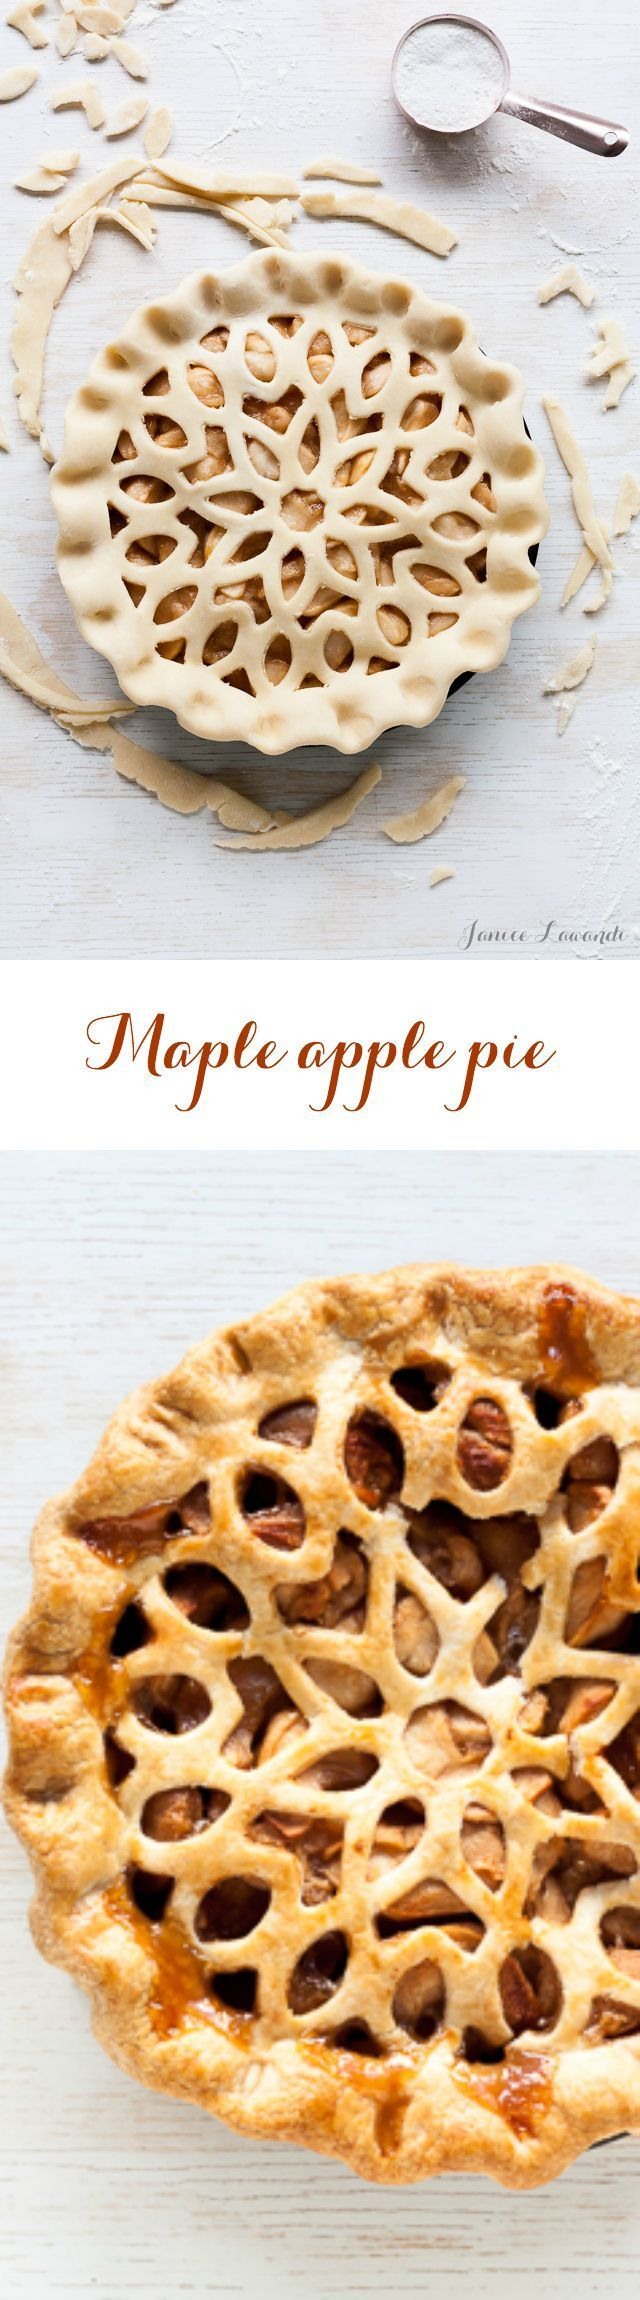 Maple apple pie recipe with maple roasted apples | Kitchen Heals Soul